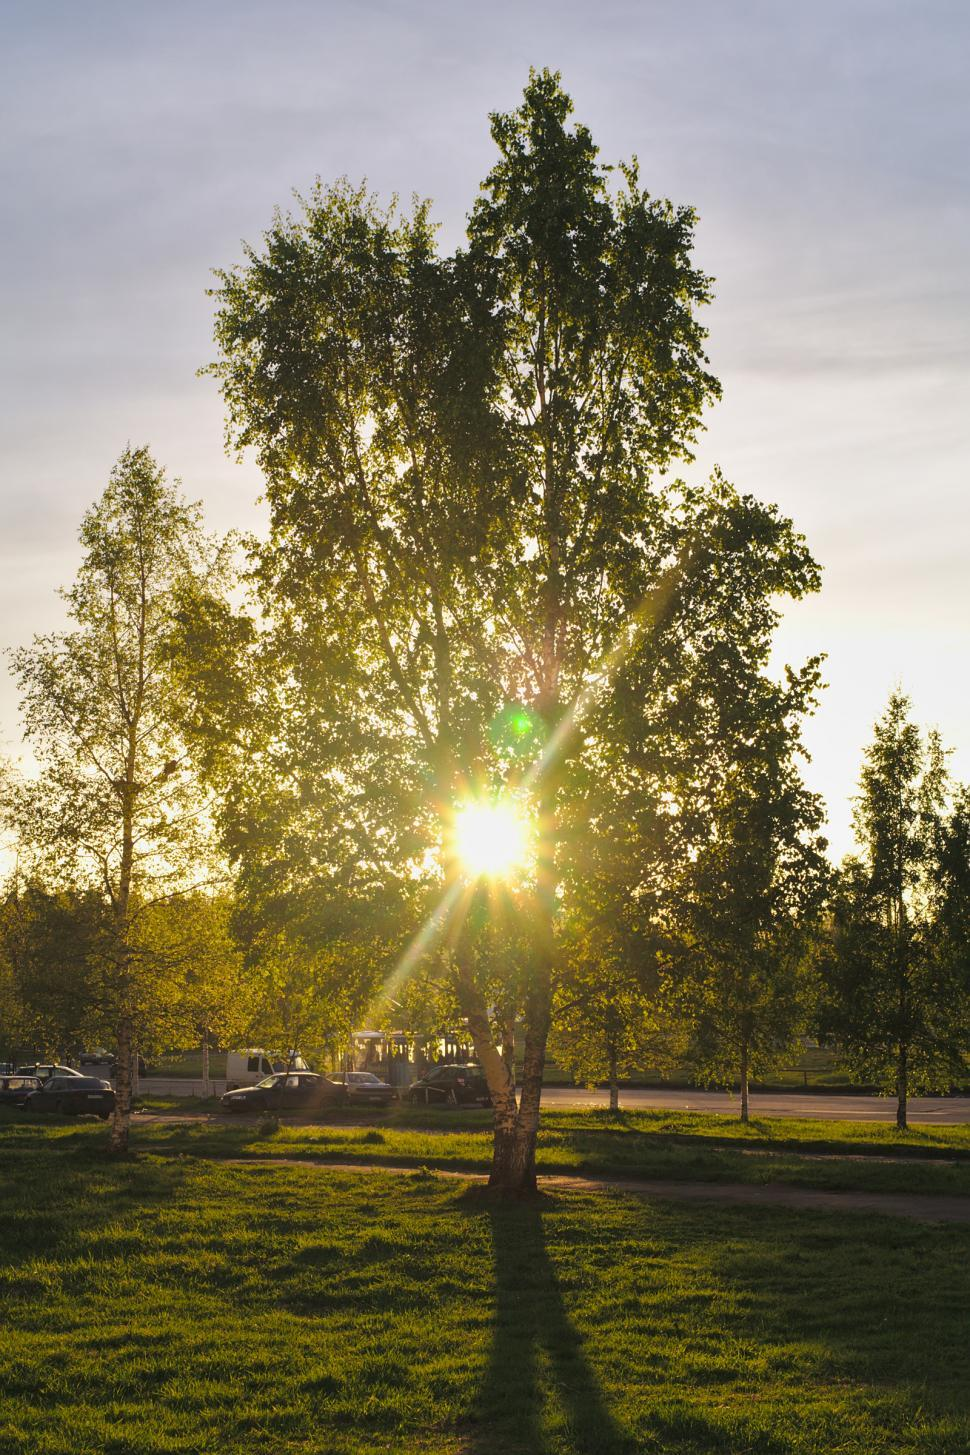 Download Free Stock HD Photo of Sun shining through a tree Online